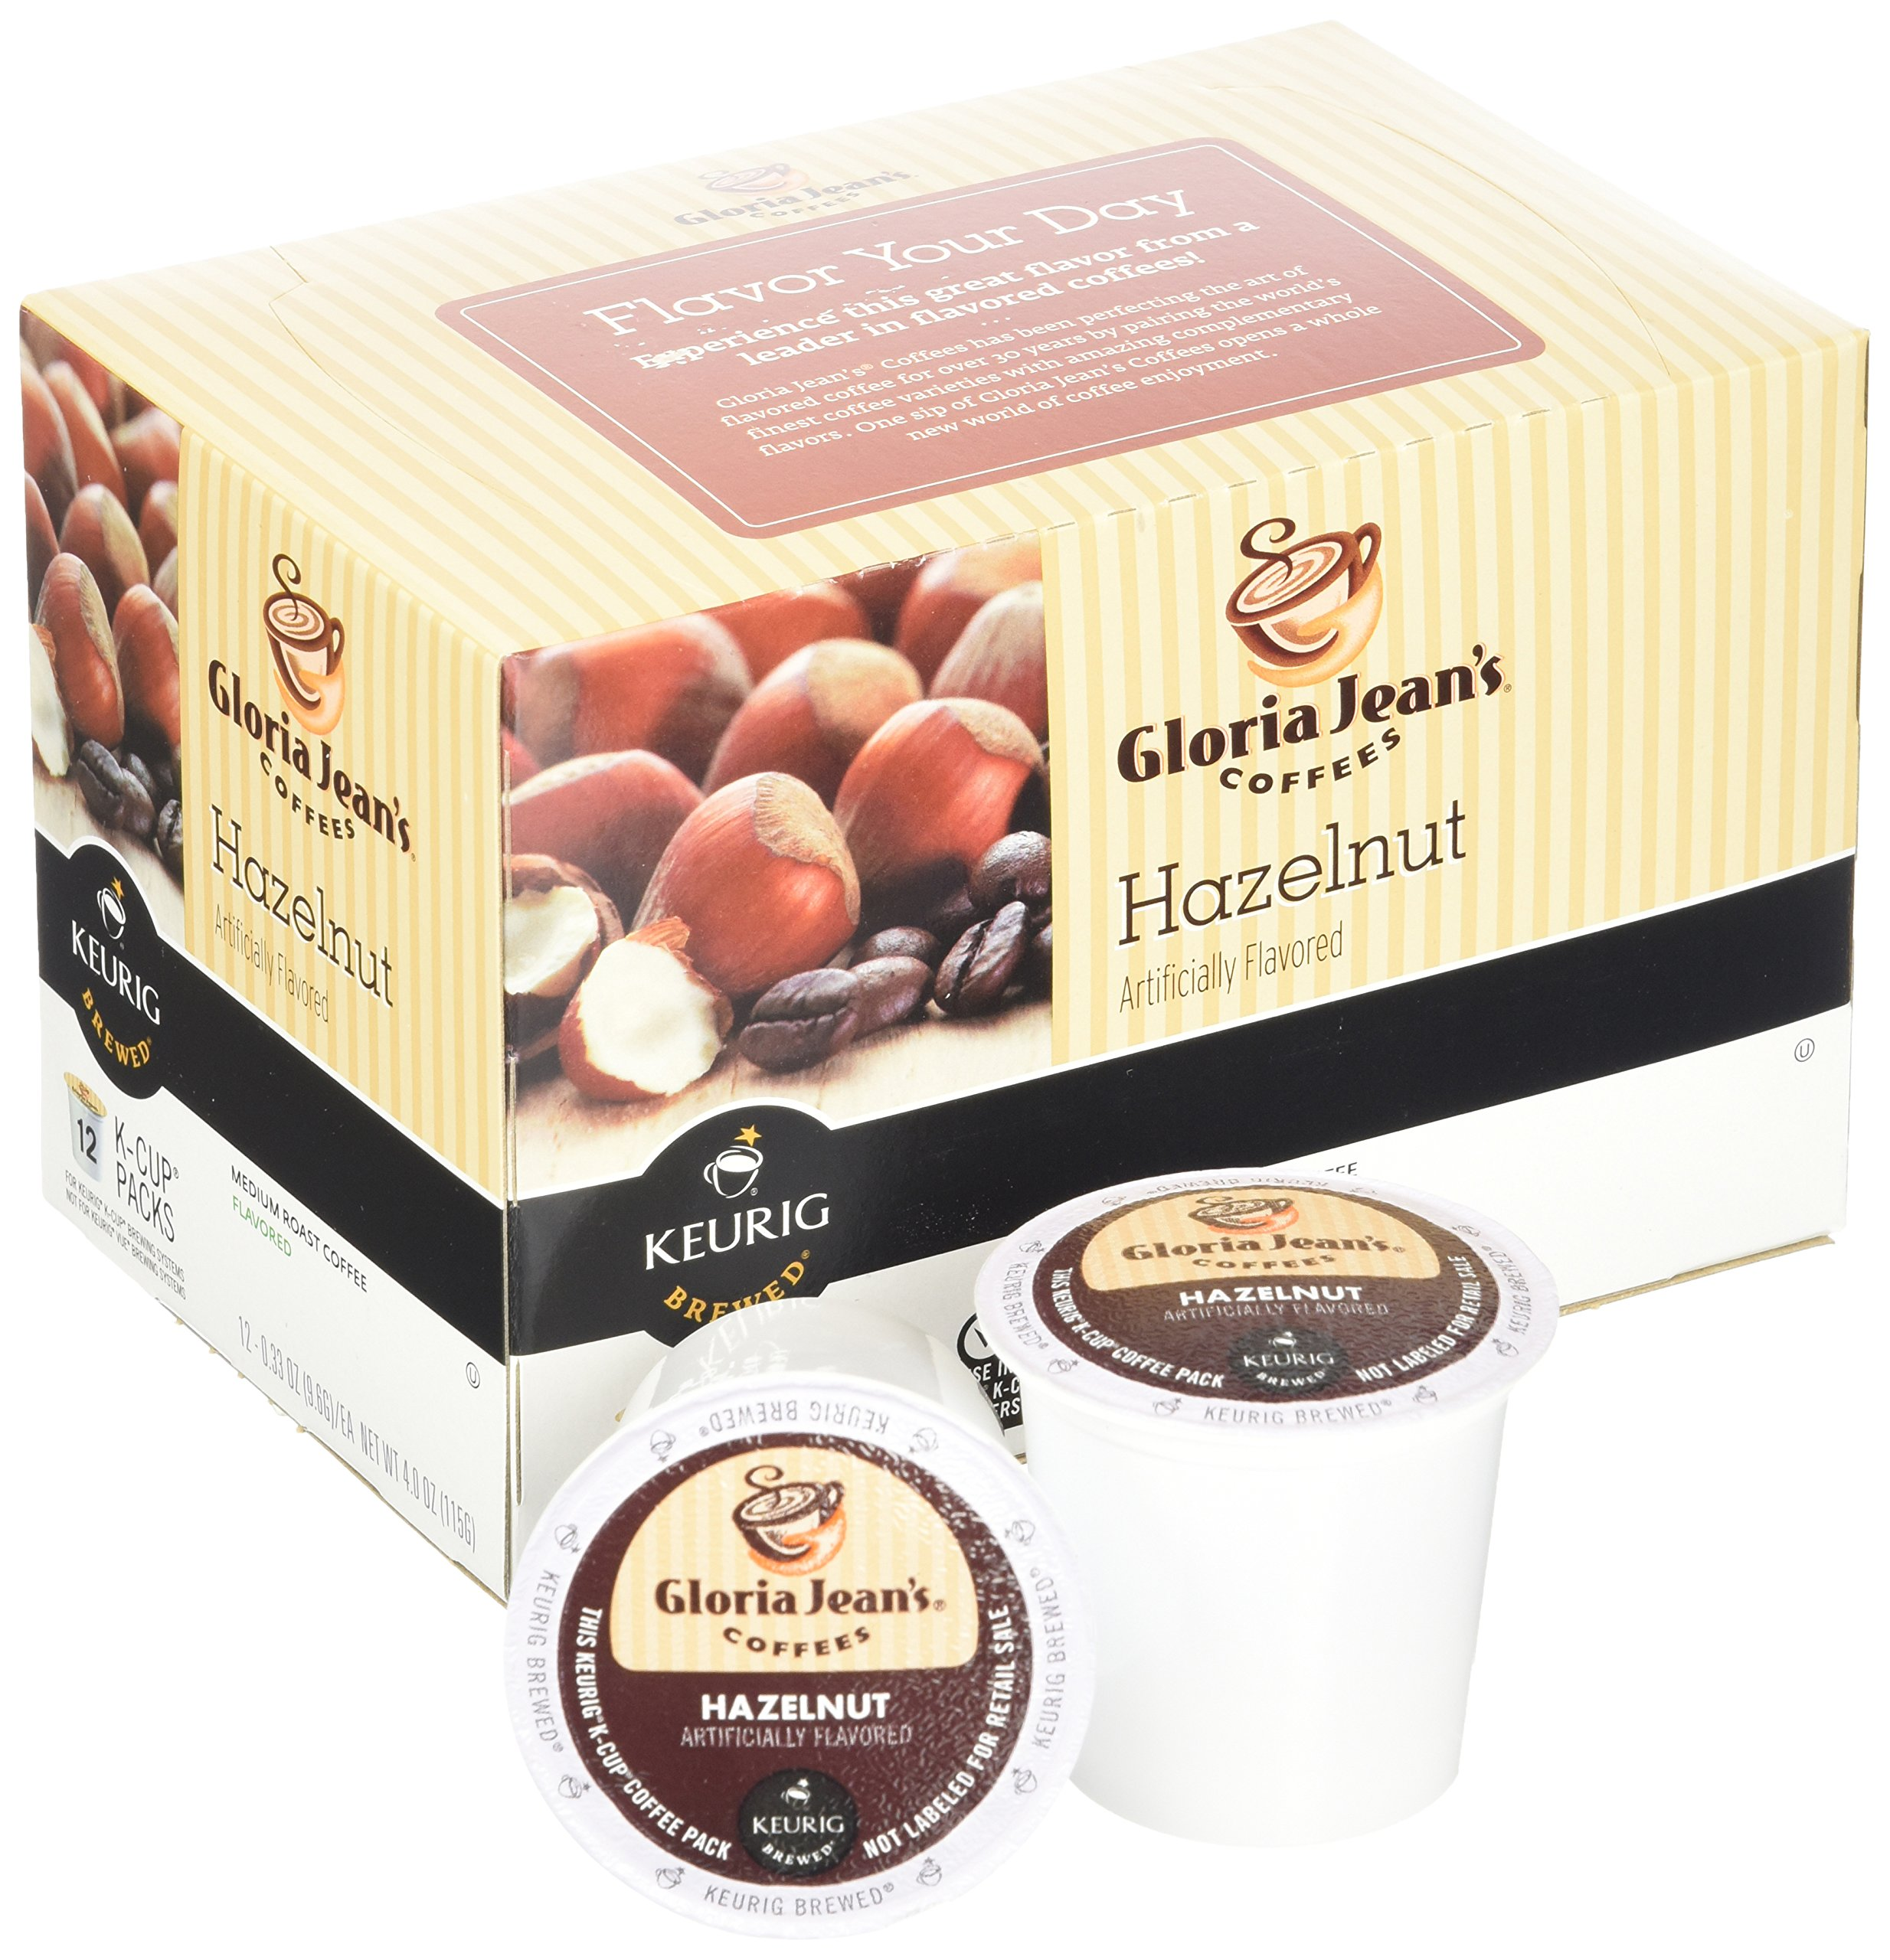 Green Mountain Coffee Roasters Gourmet Single Cup Coffee Hazelnut Gloria Jean's Coffee 12 K-Cups by Green Mountain Coffee Roasters (Image #2)